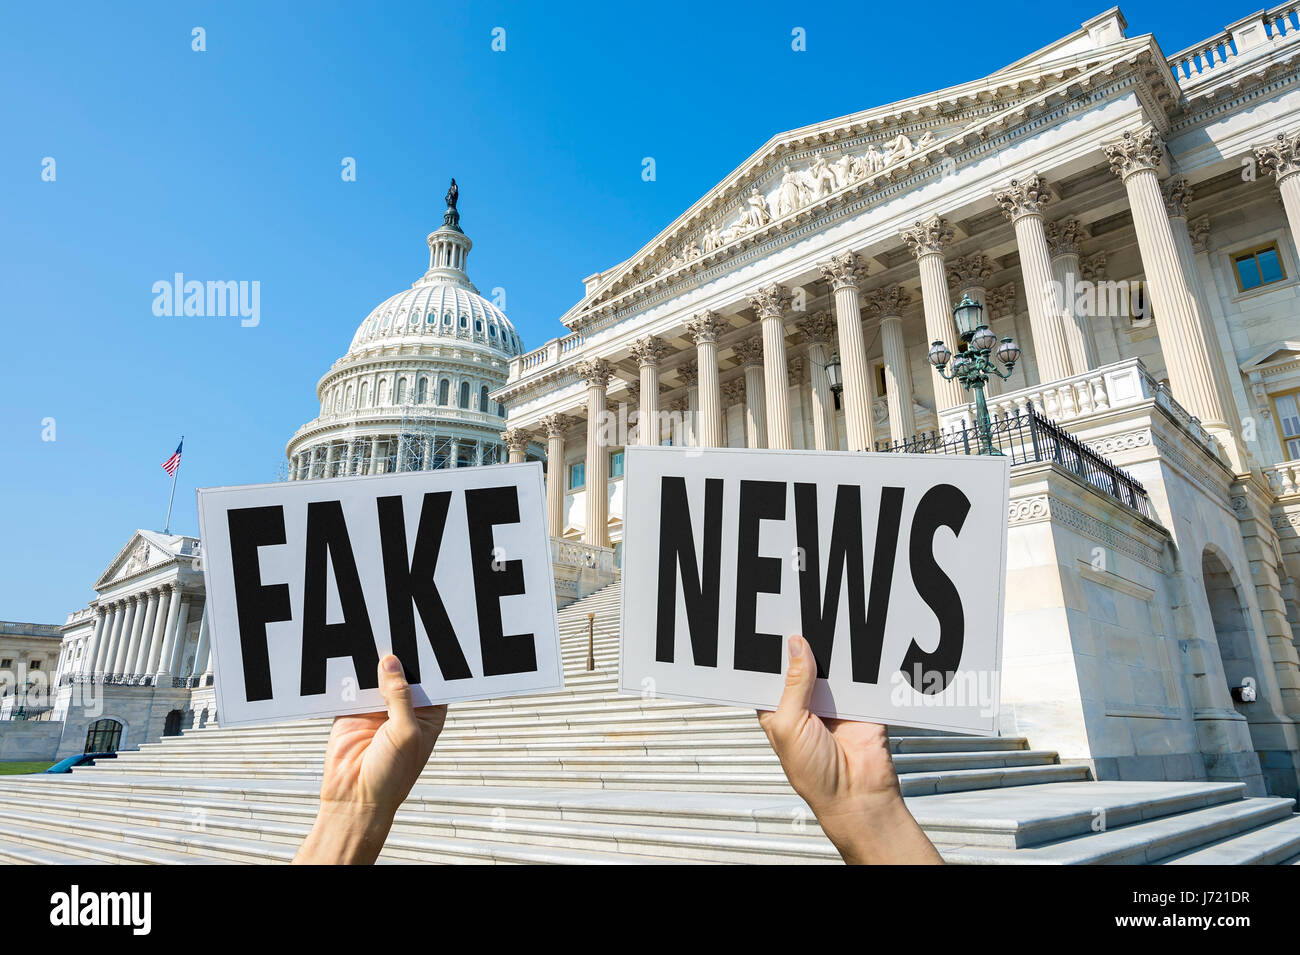 Hands holding signs protesting fake news coverage in front of the Capitol Building in Washington DC, USA - Stock Image